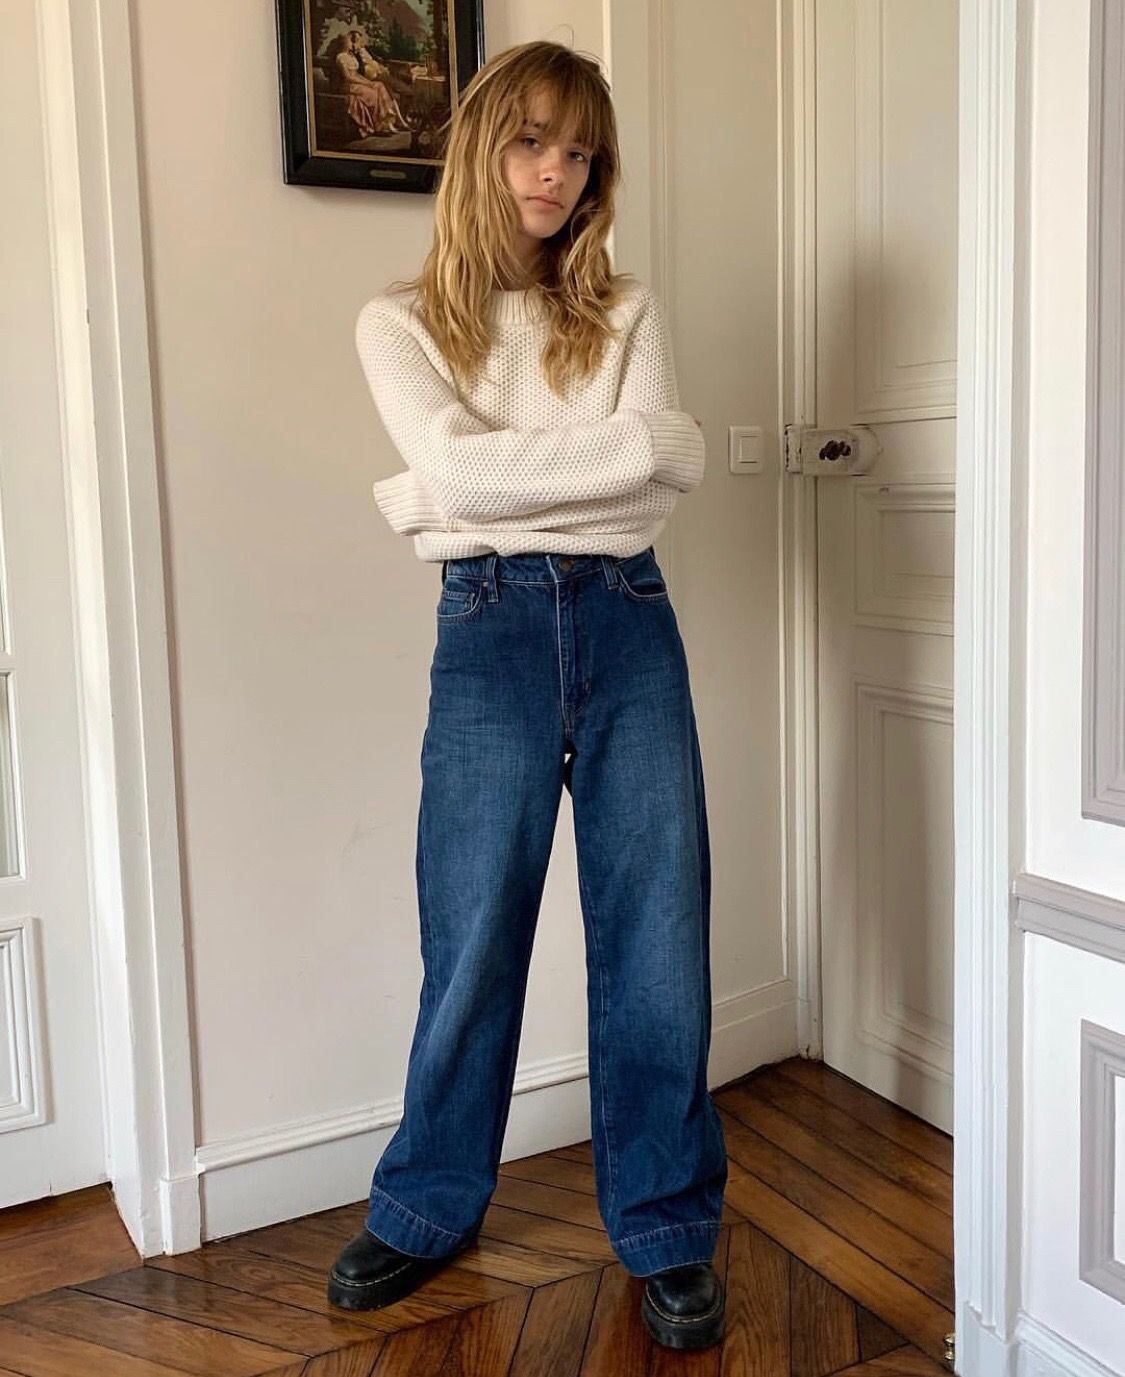 Pin by Hudson Supply on Dye in 2019 | Jeans, Fashion, Pants